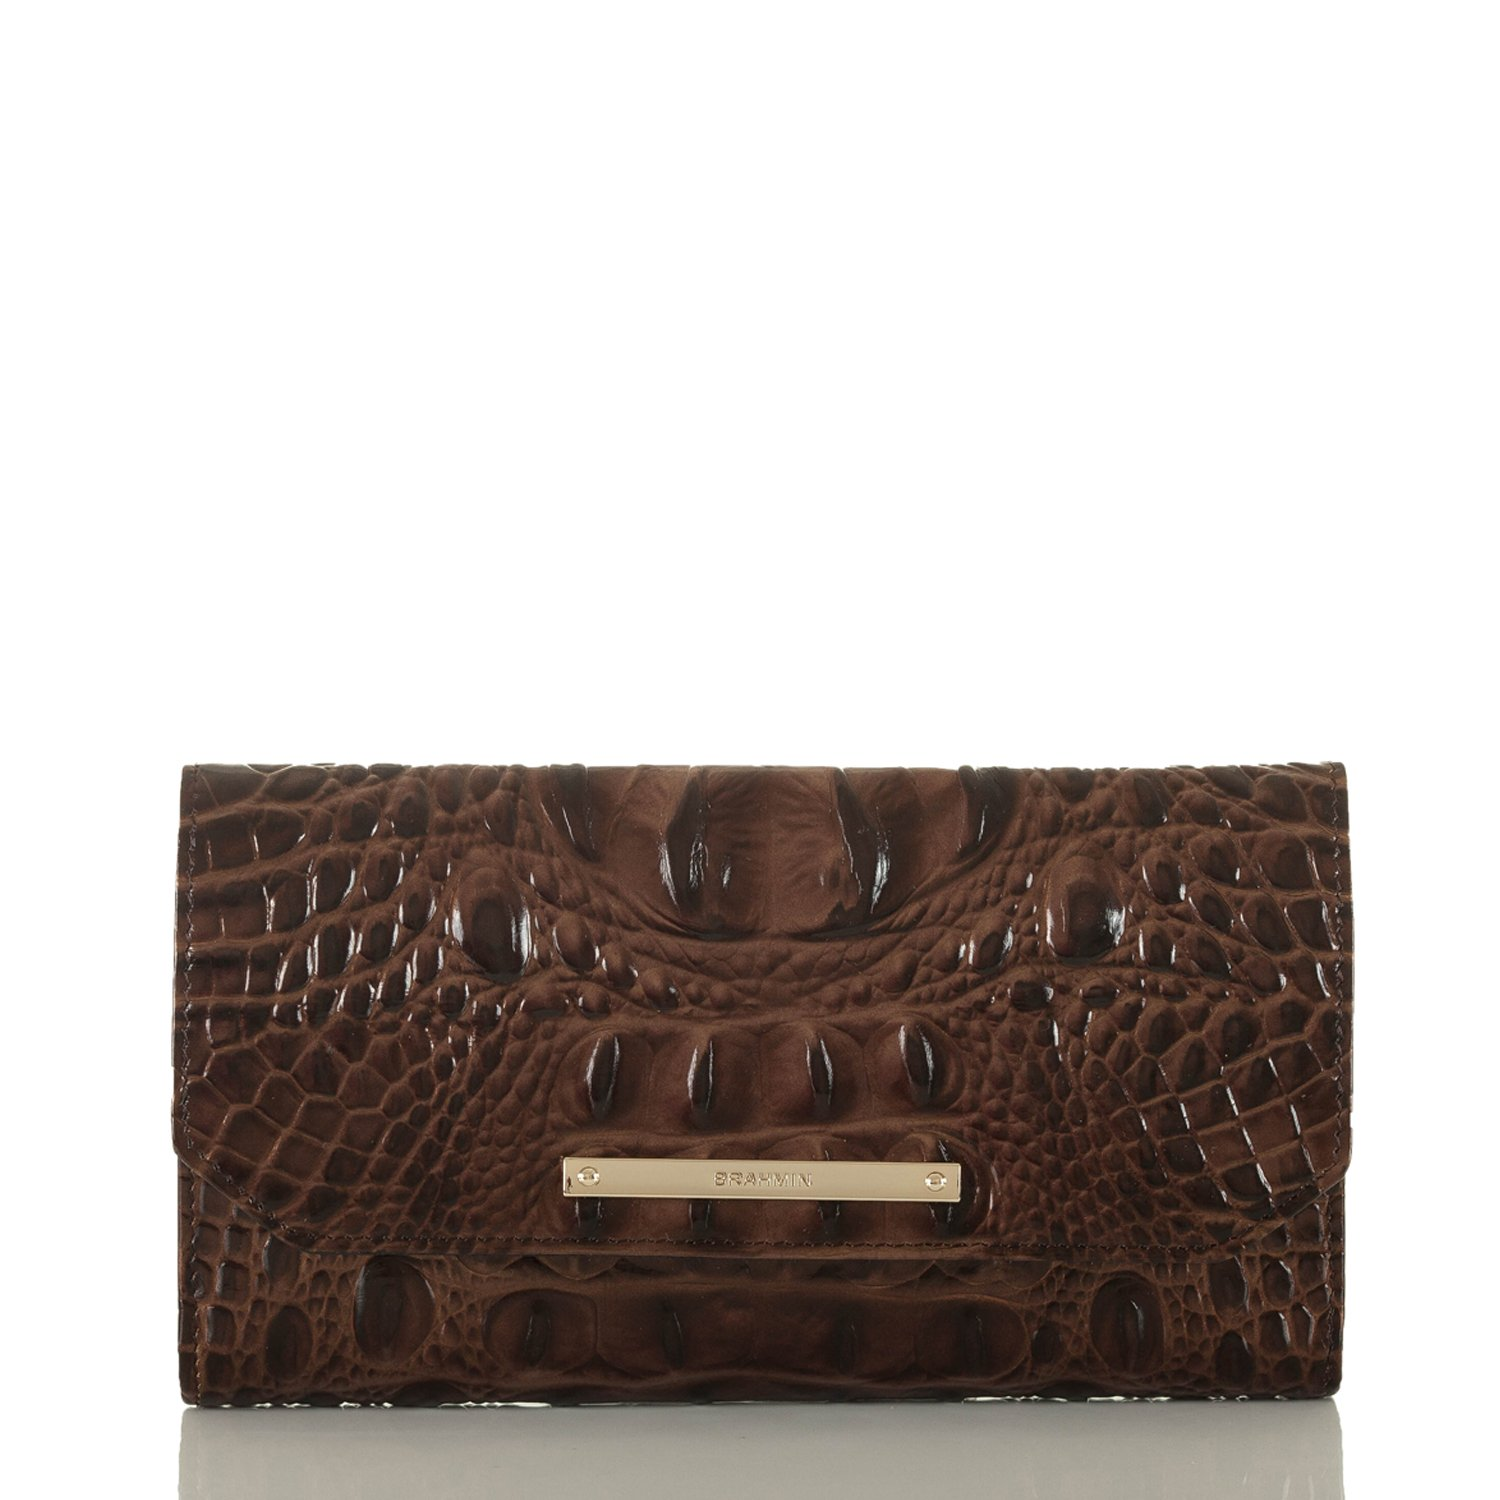 Brahmin Women's Soft Wallet Checkbook Cover, Chestnut, One Size